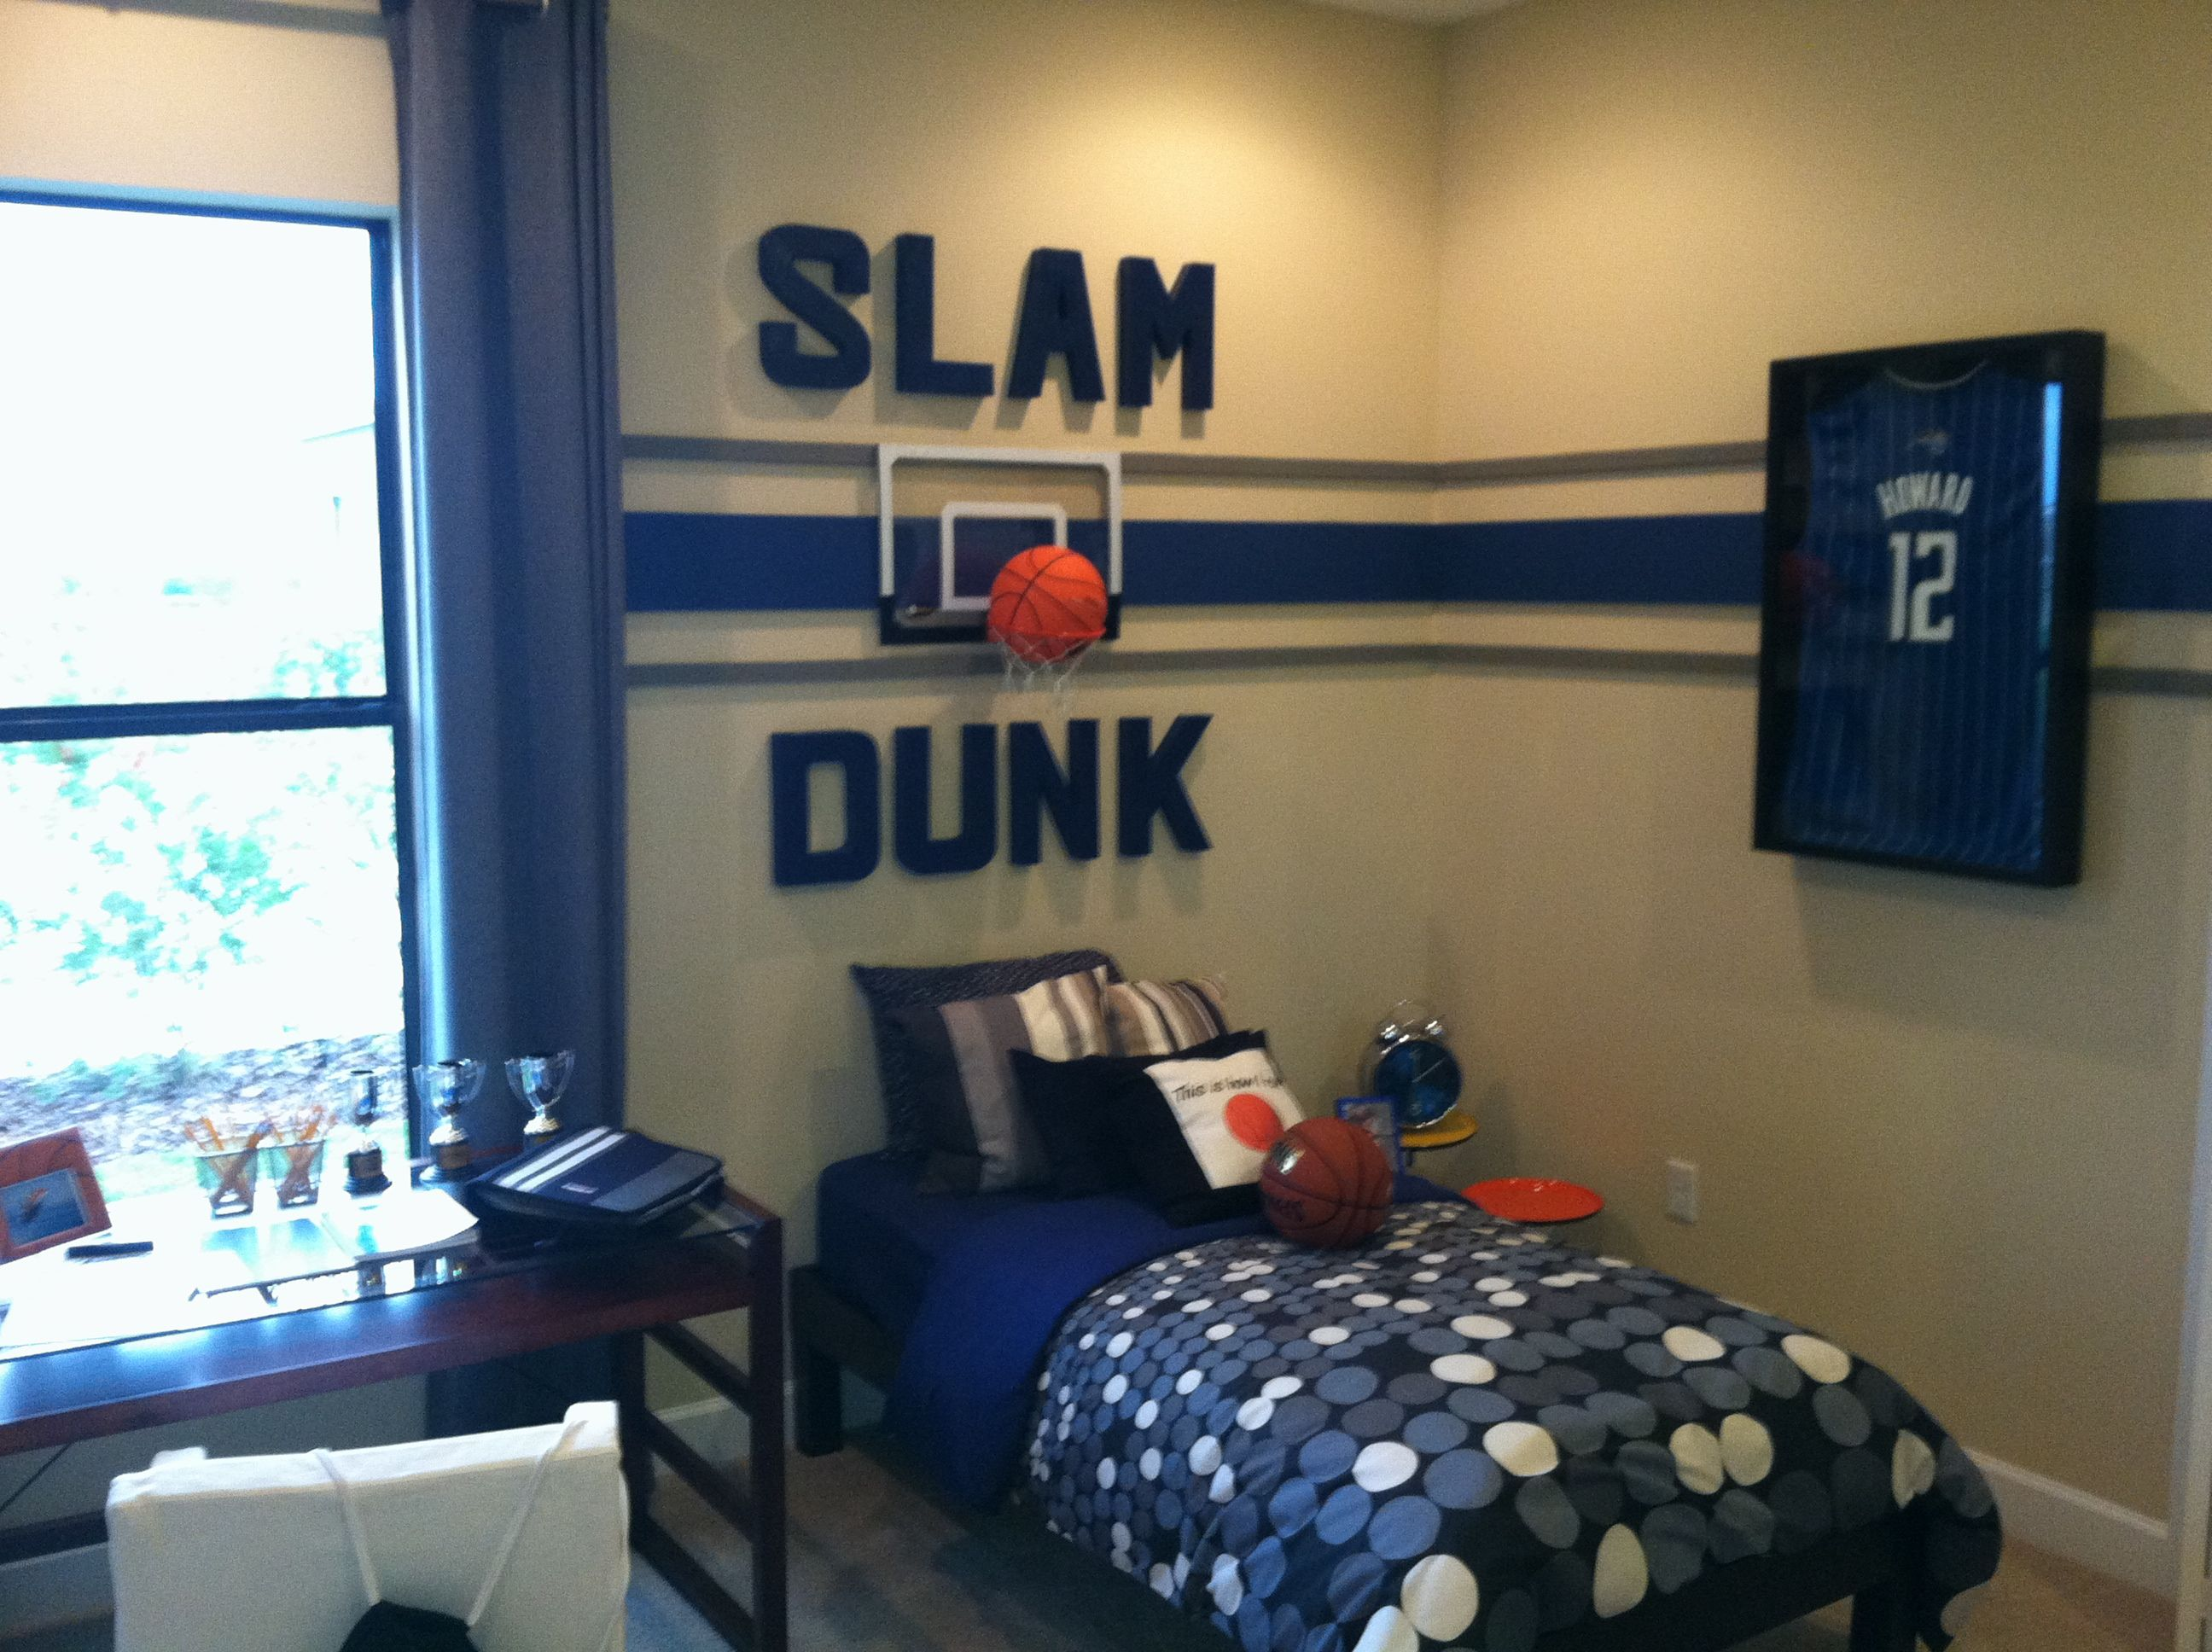 Enjoyable Sports Themed Boys Bedroom Ideas With Blue Polkadot Cover Sheet For Single Bedding As Well